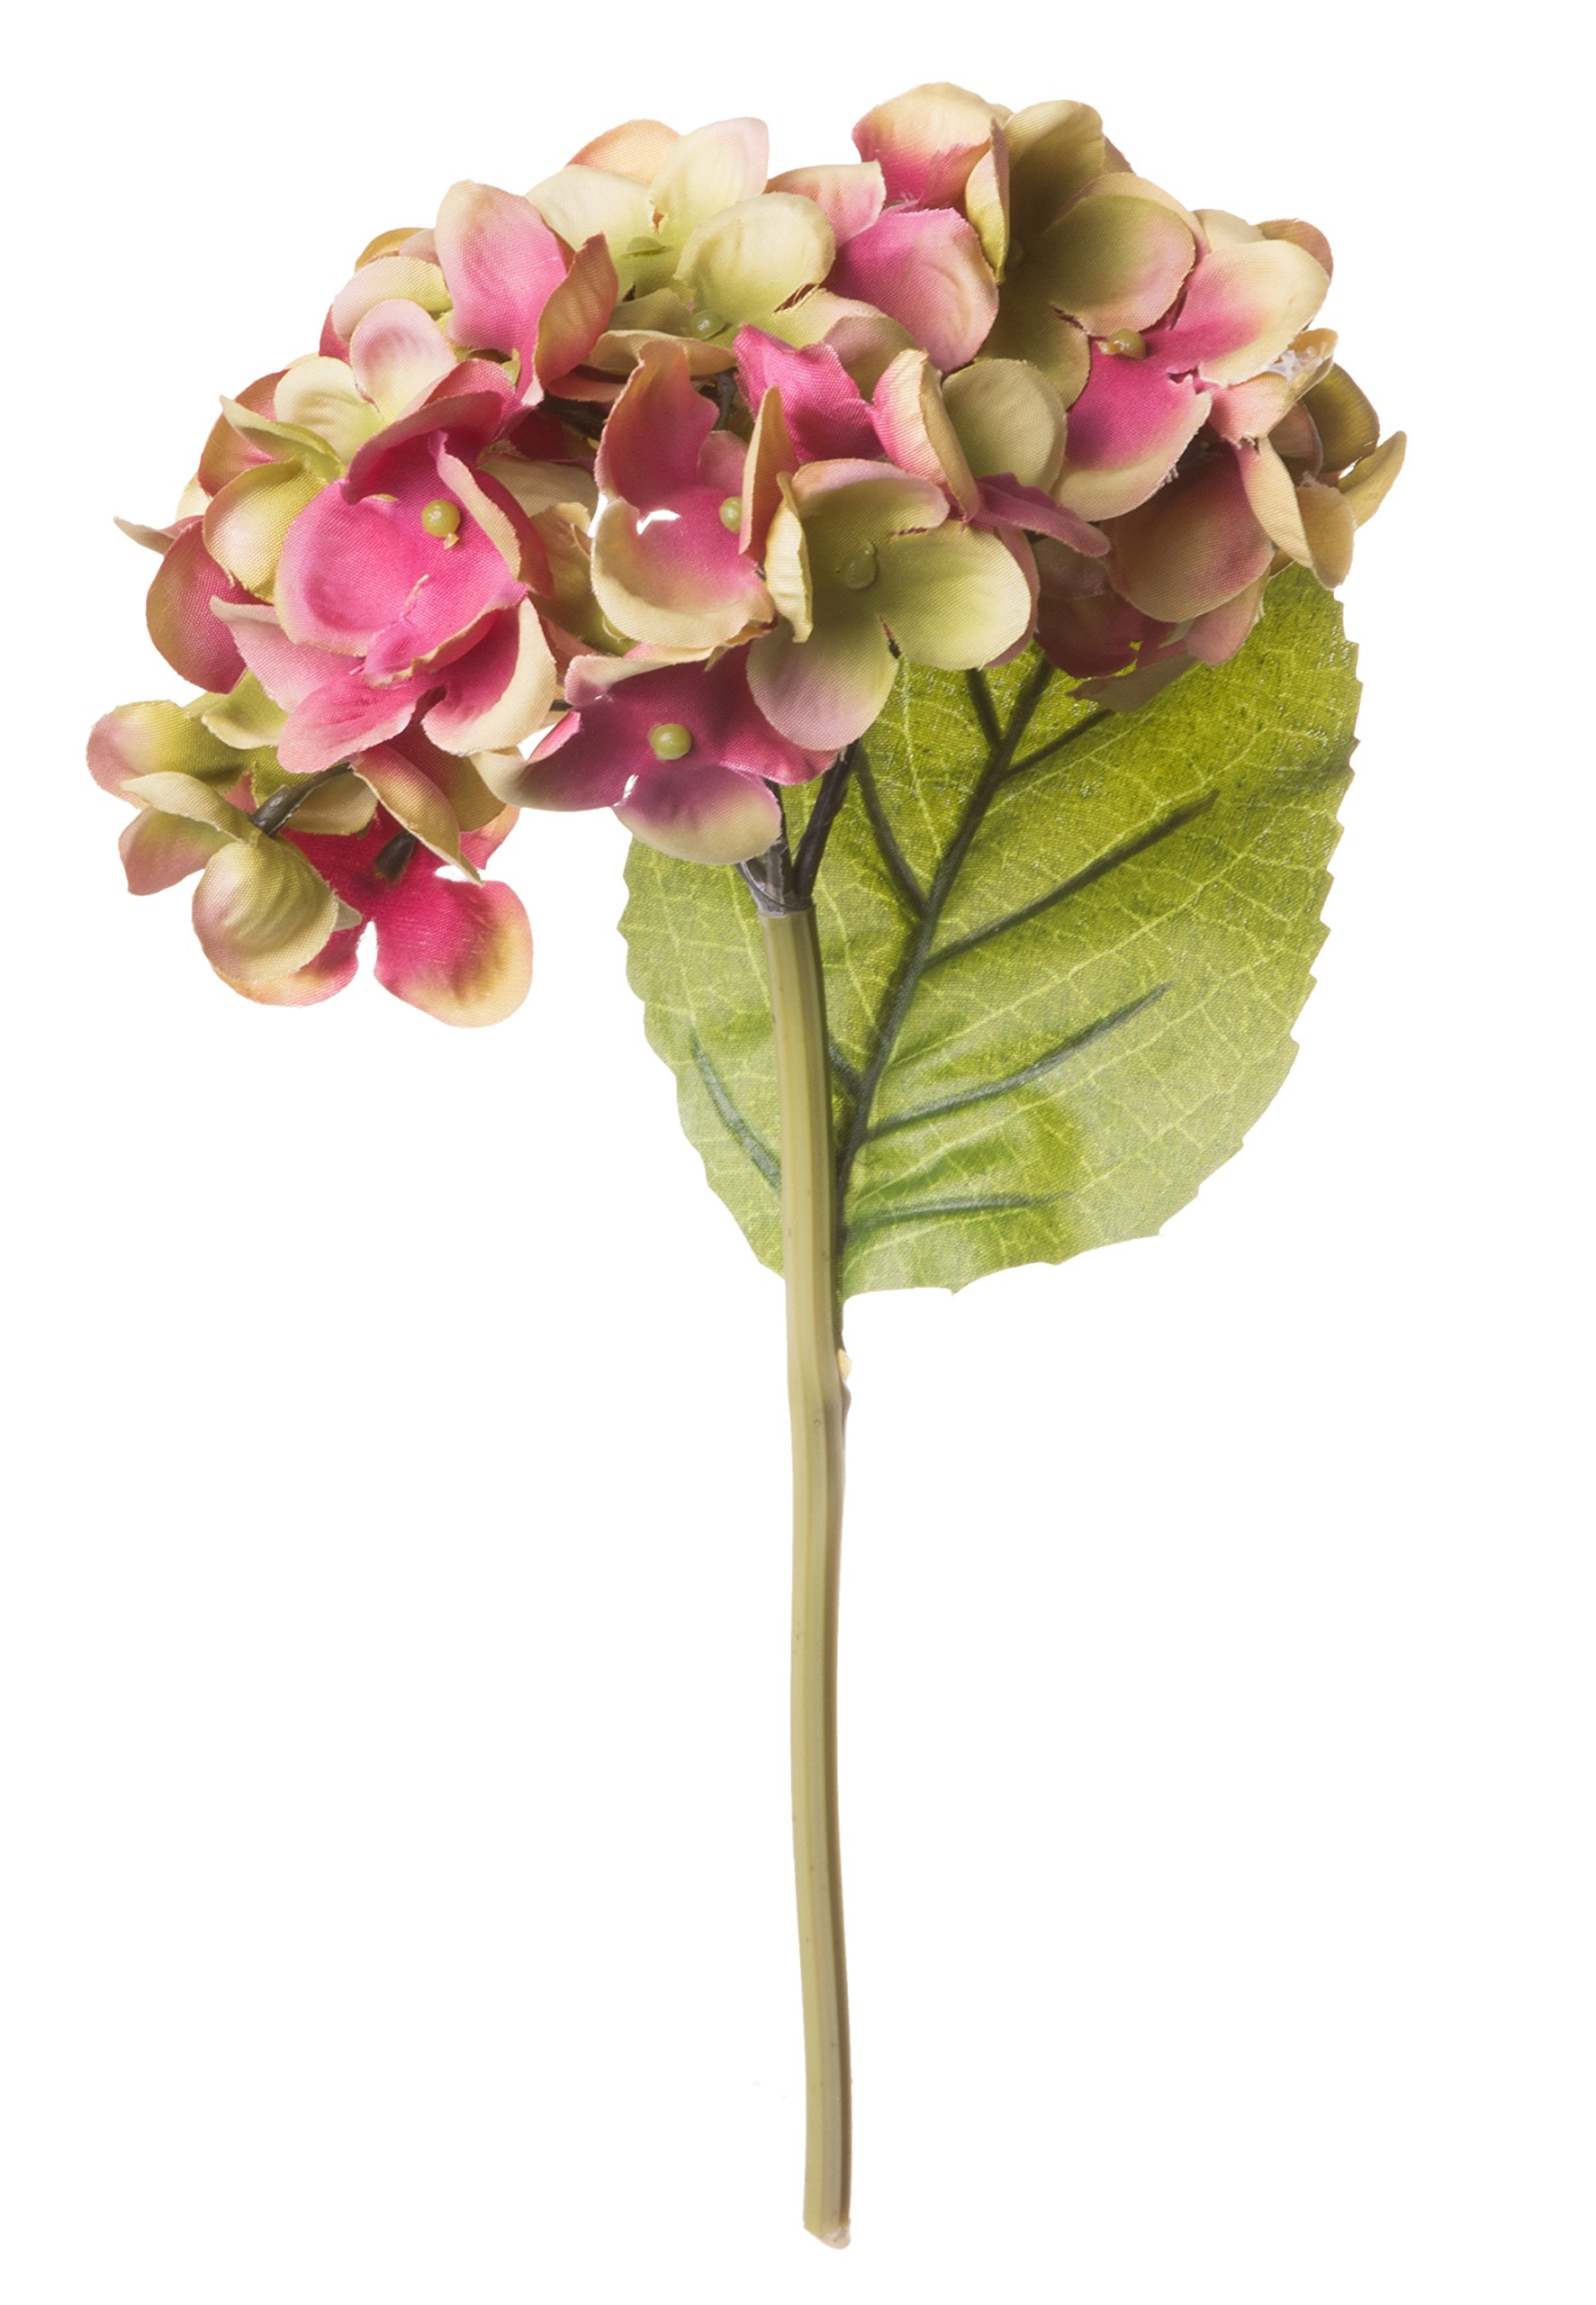 Red Co. Gorgeous Pink and Green Hydrangea, Decorative Faux Flowers, Artificial Floral Arrangements, Home and Garden Décor, 10-inch